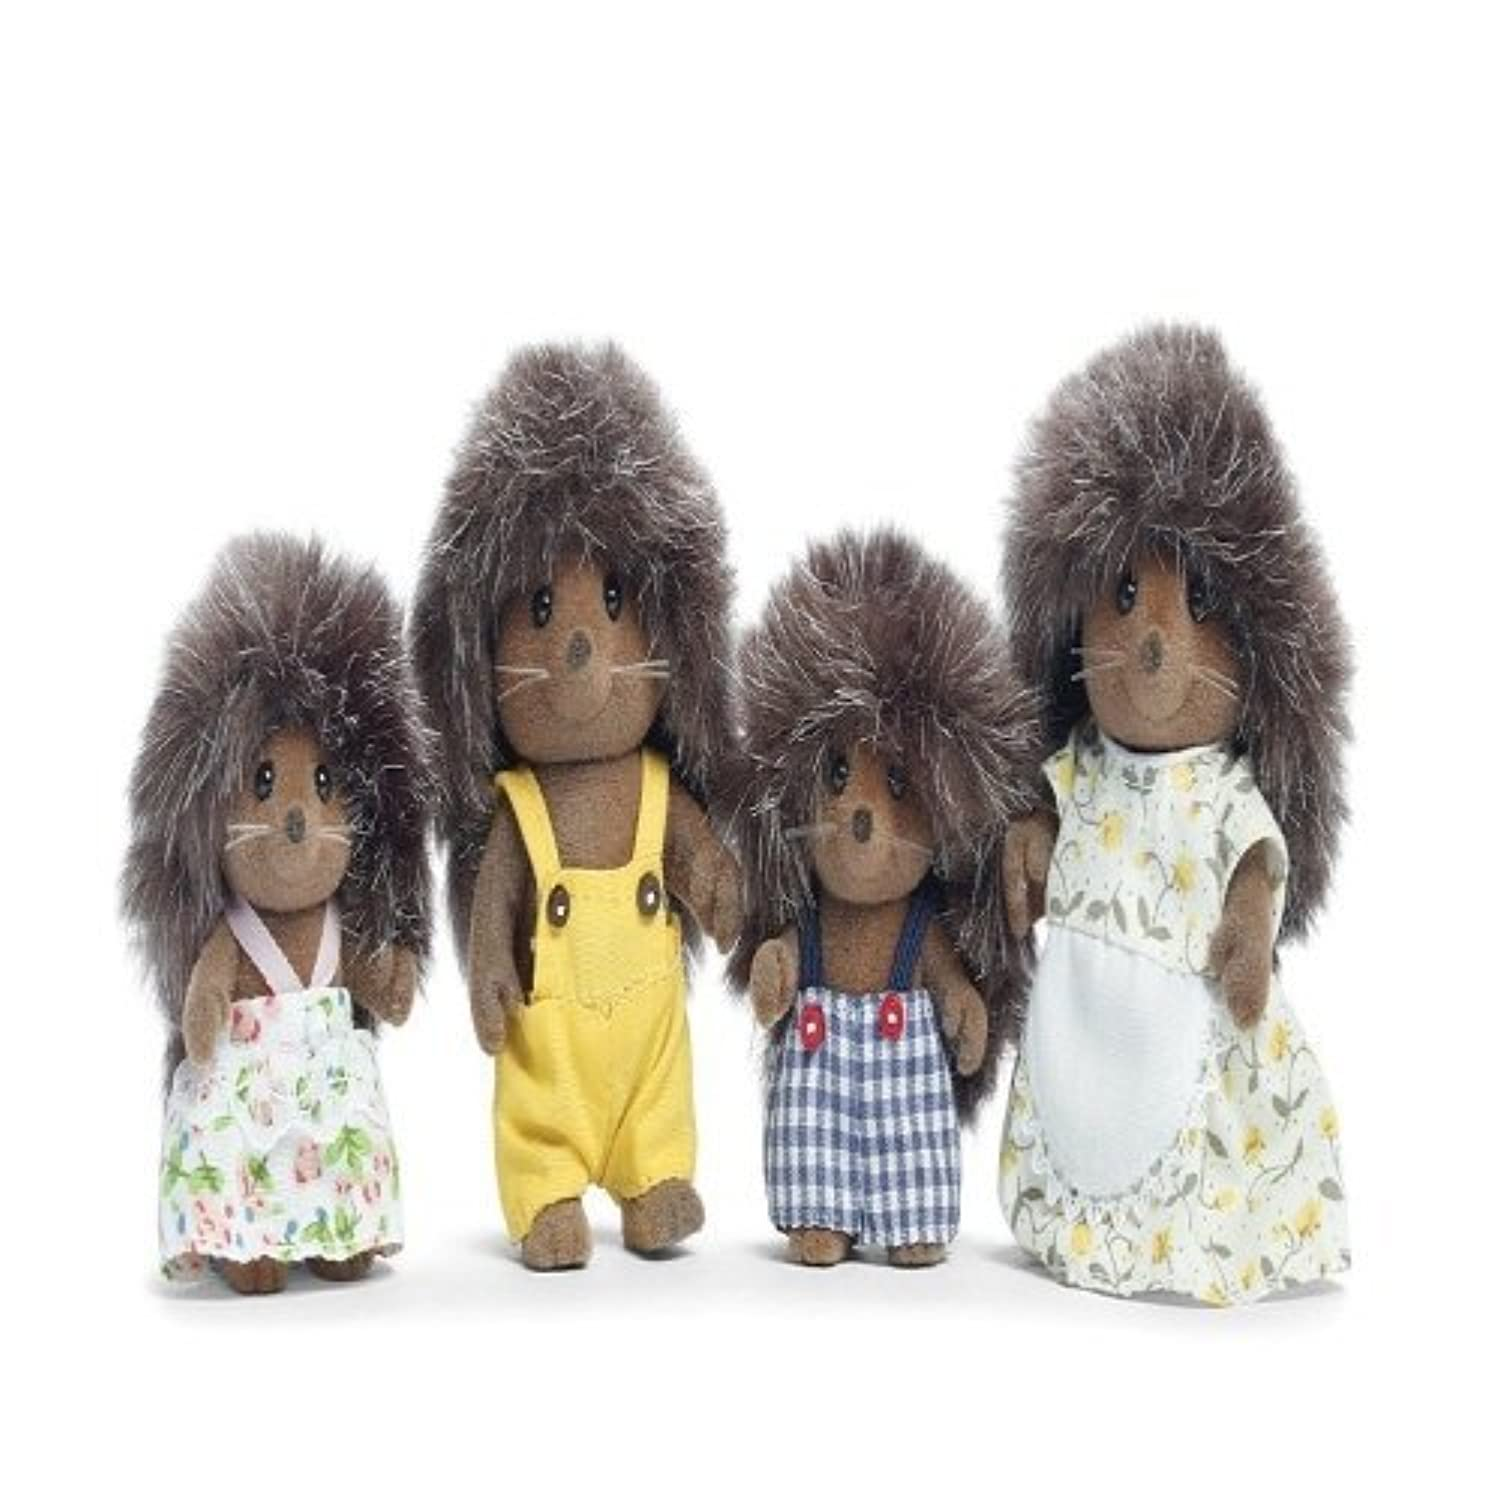 Sylvanian Families - Calico Critters Pickleweeds Hedgehog Family[002kr] by Sylvanian Families [並行輸入品]